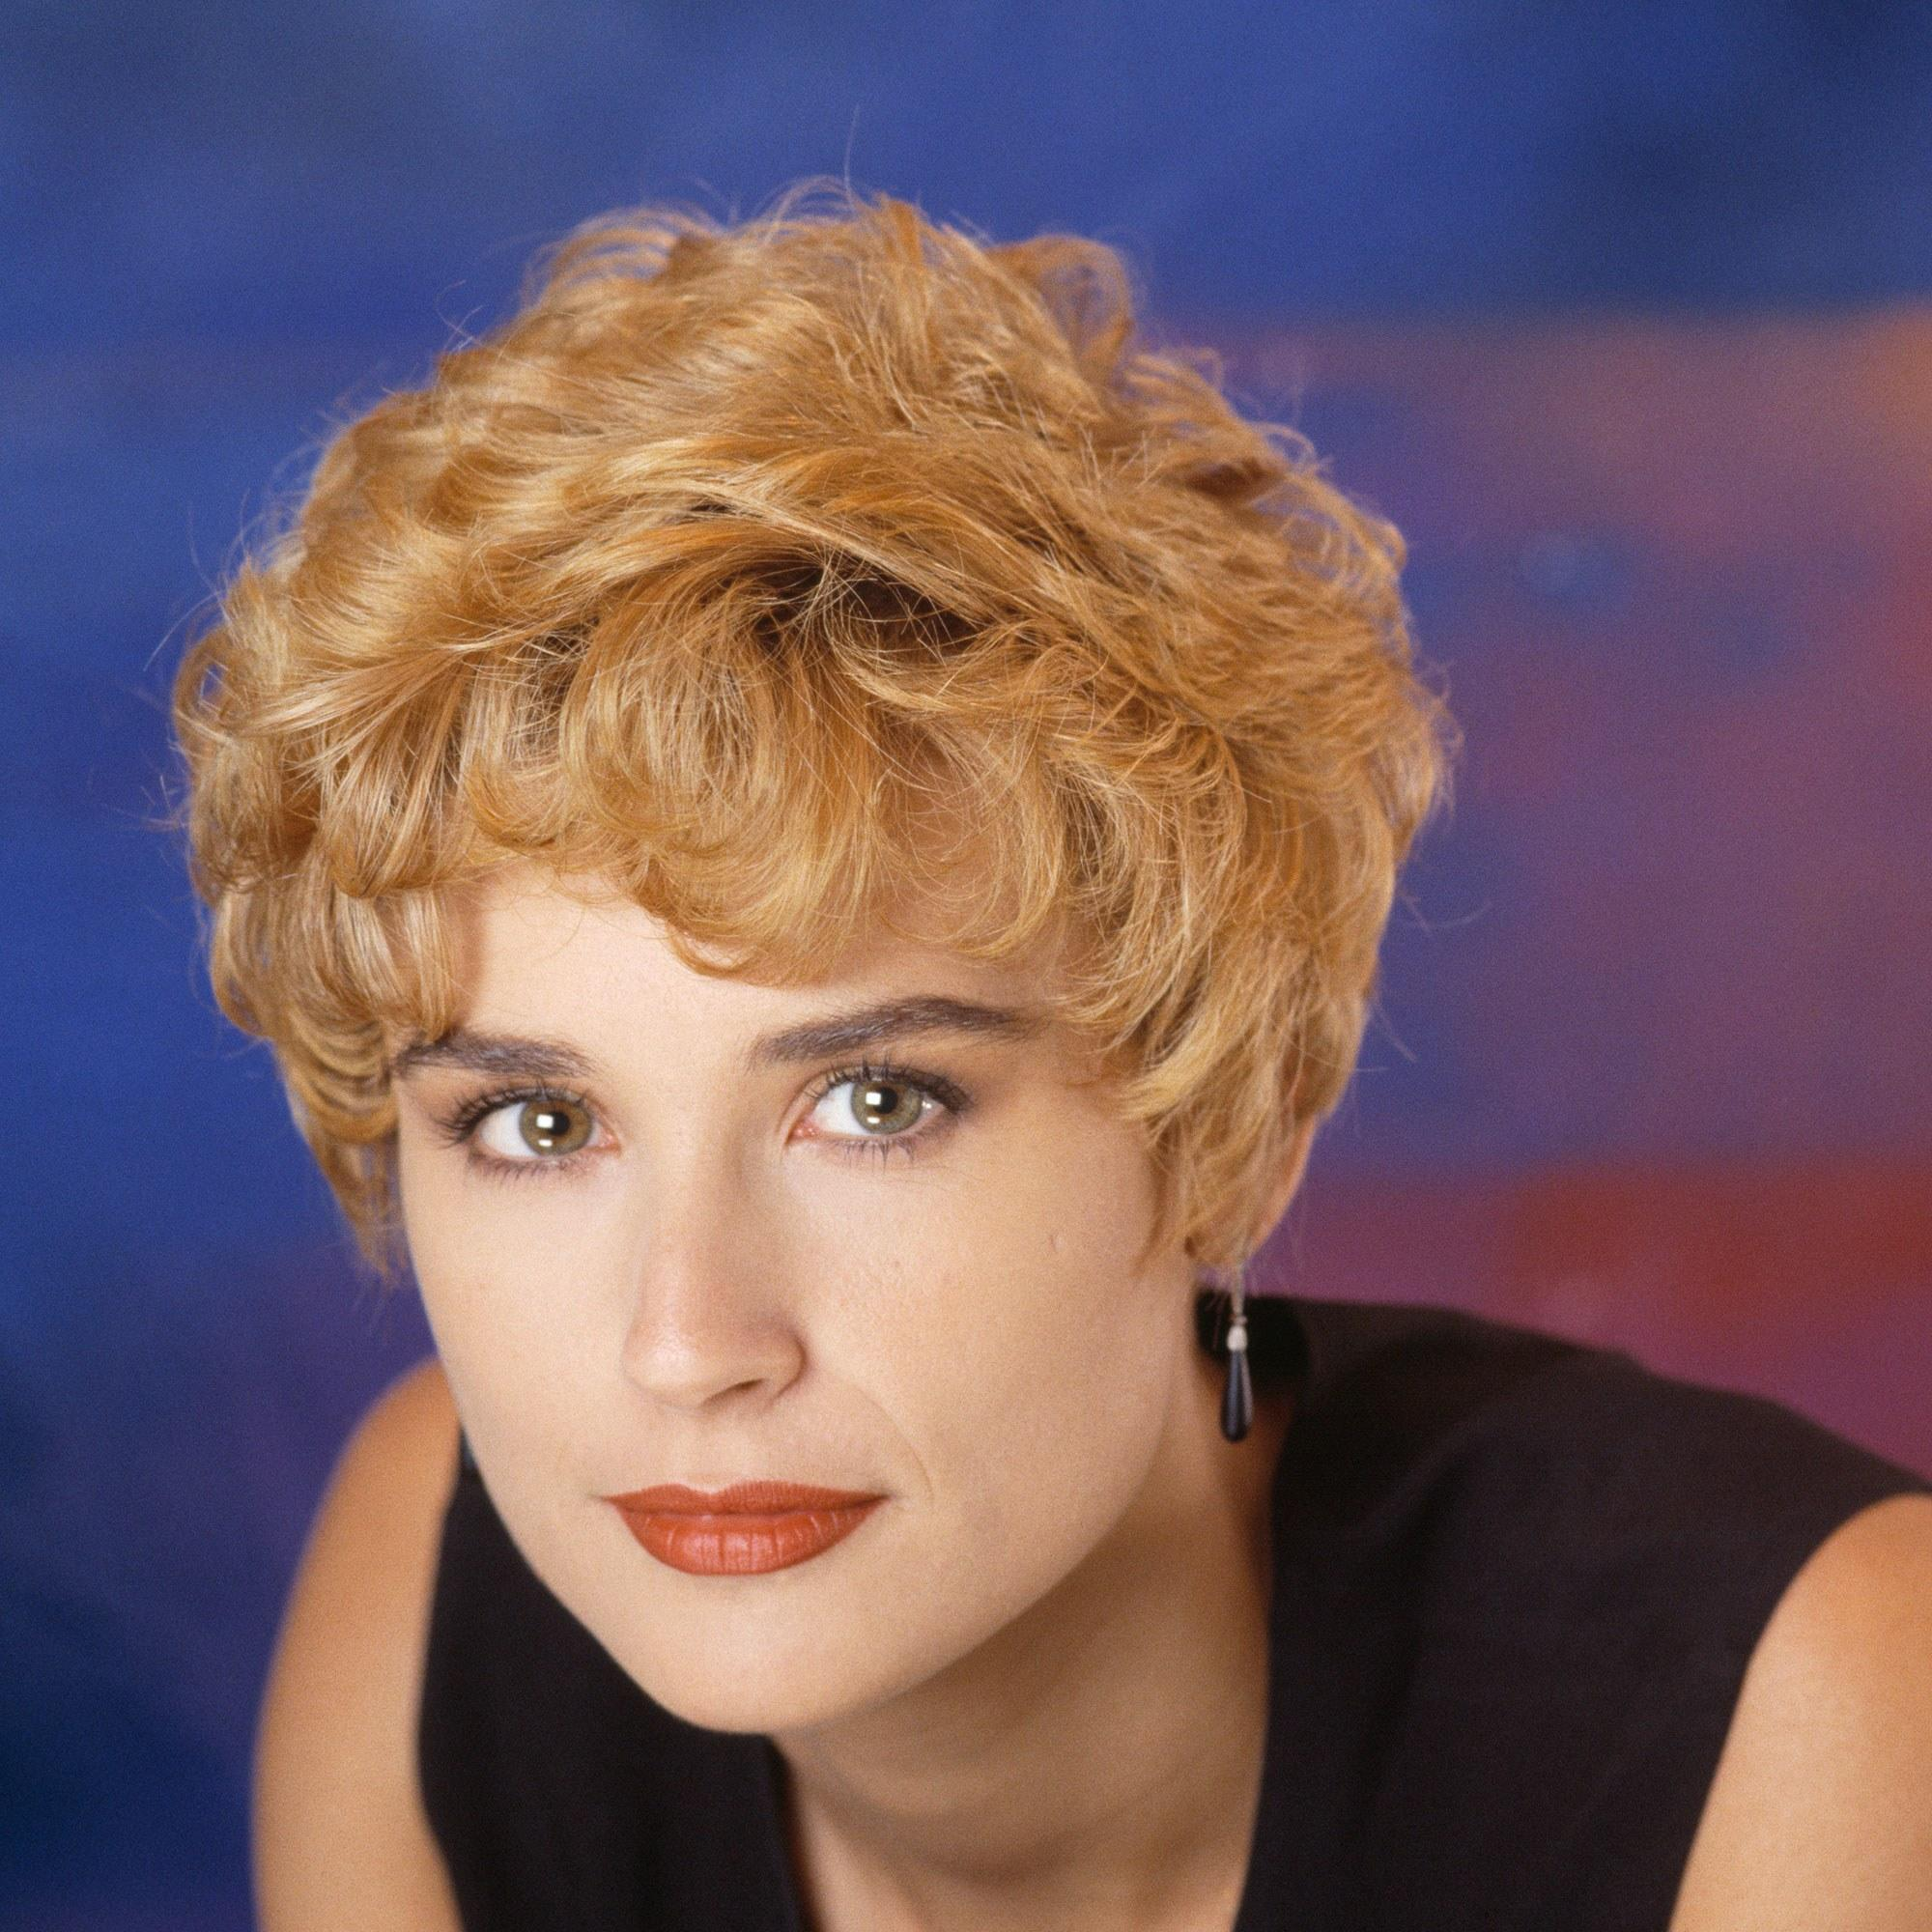 These Were The Best Short Haircuts Celebrities Had In The 90s